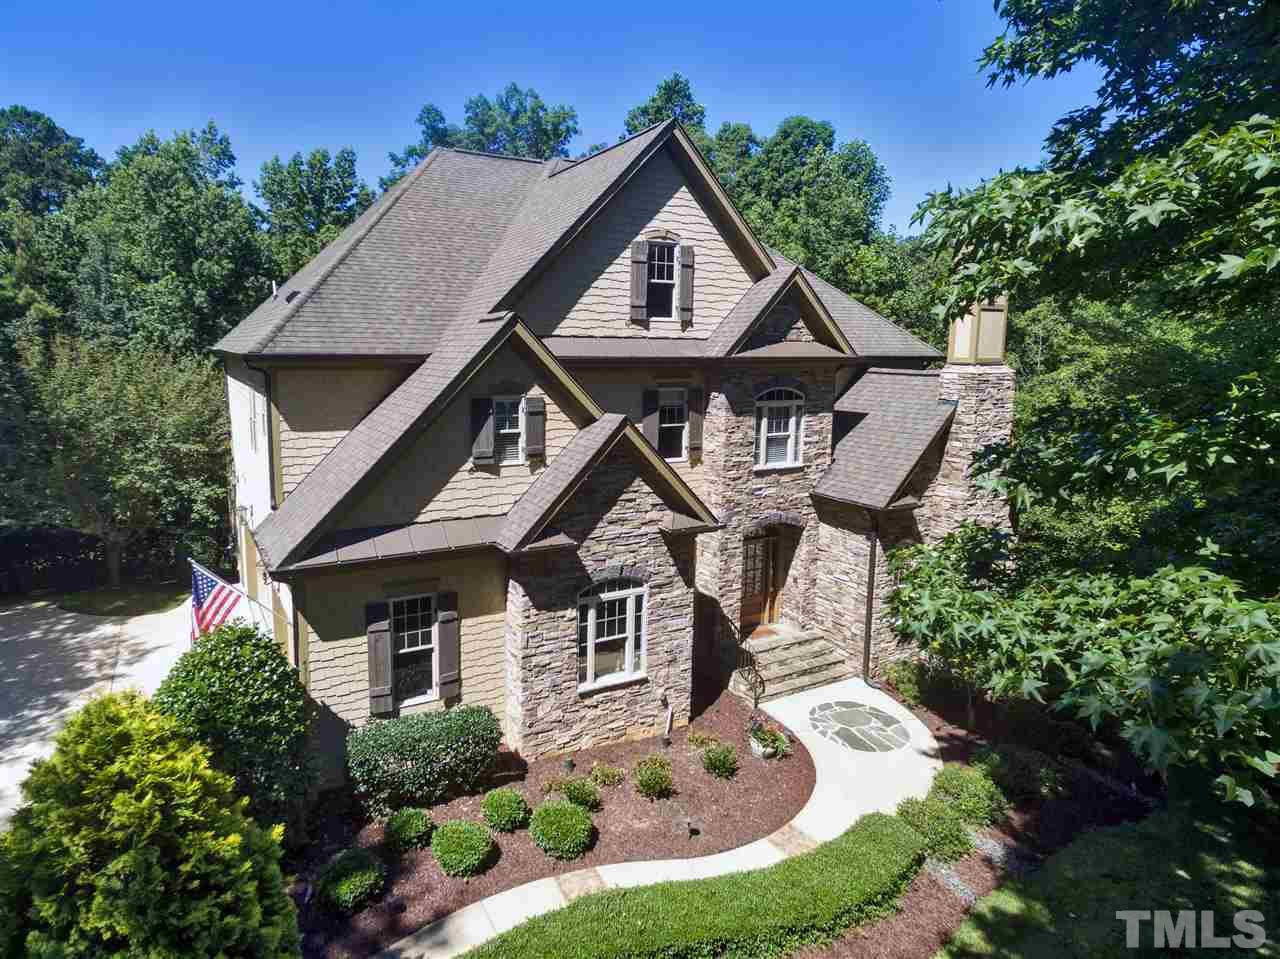 GREAT SPACE IN THIS CUSTOM BUILT TWO STORY HOME W/ FINISHED BASEMENT. Fabulous private setting on .92 ACRE wooded Cul-De-Sac Lot. Features Lrg Family Rm, Formal Living & Dining, Hardwoods, 1st Flr Bedroom, w/ bath. COOKS KITCHEN w/professional SS appl, ctr island, walkin pantry. LUXURY OWNERS SUITE w/FP & sitting area, spa like bath.  BASEMENT w/2nd kitchen, Game RM, Exercise RM & Theater RM. OUTDOOR LIVING area w/ patio & stone FP,observe wildlife & nature. 900 Sq Ft 3RD Floor Walk UP Attic.3 CAR GARAGE.